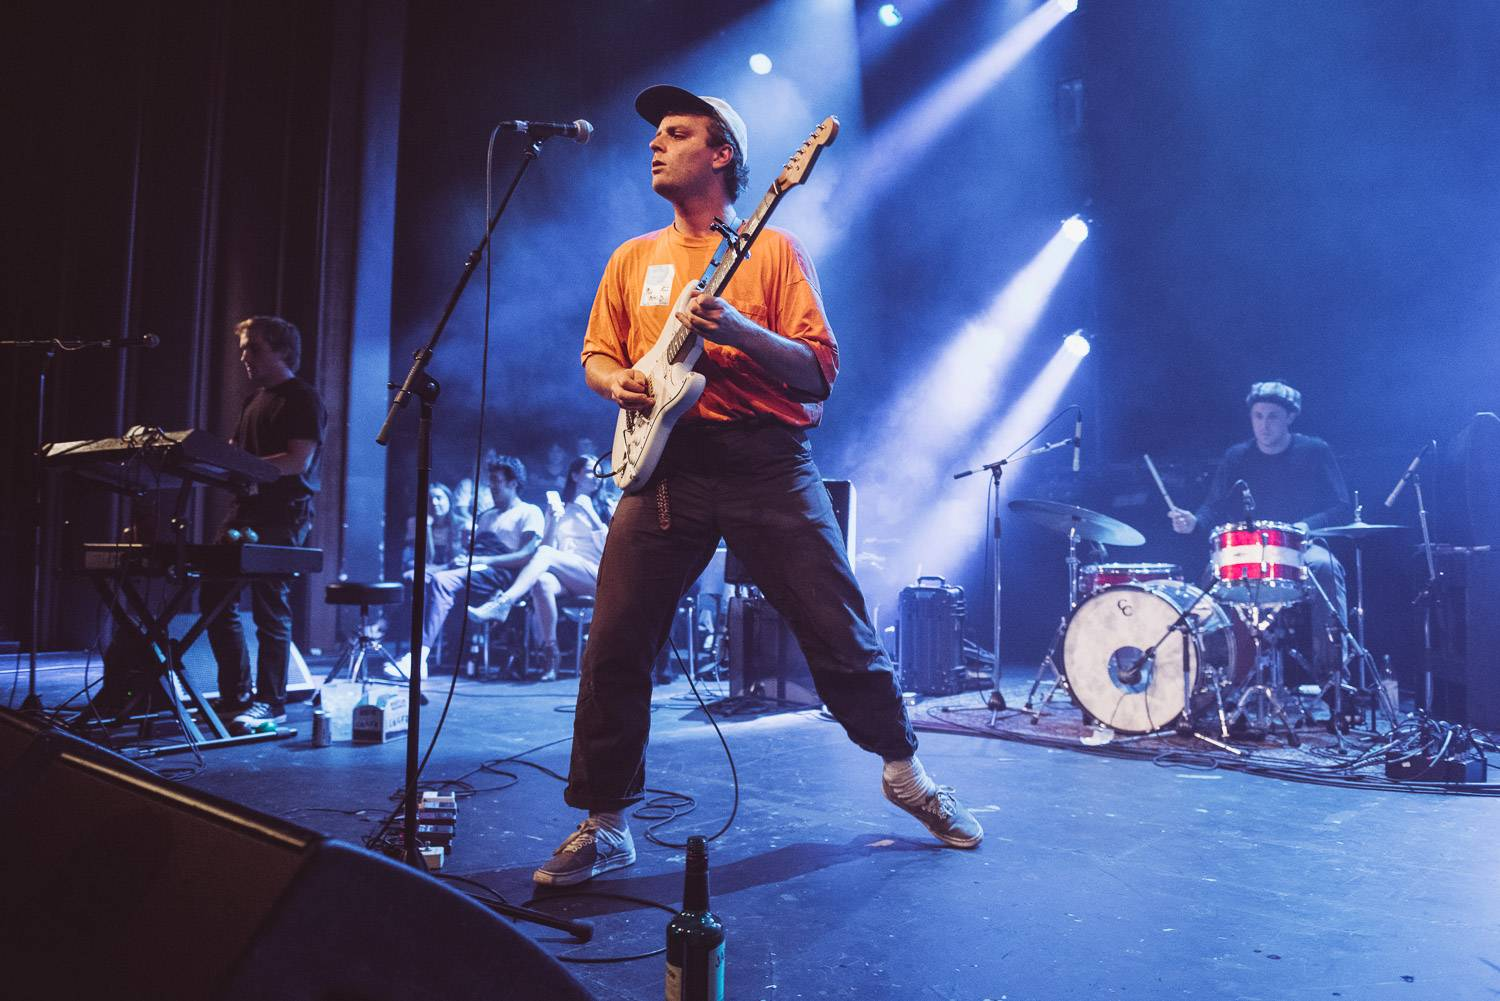 Mac DeMarco at the Vogue Theatre, Vancouver, Sept 12 2017. Pavel Boiko photo.